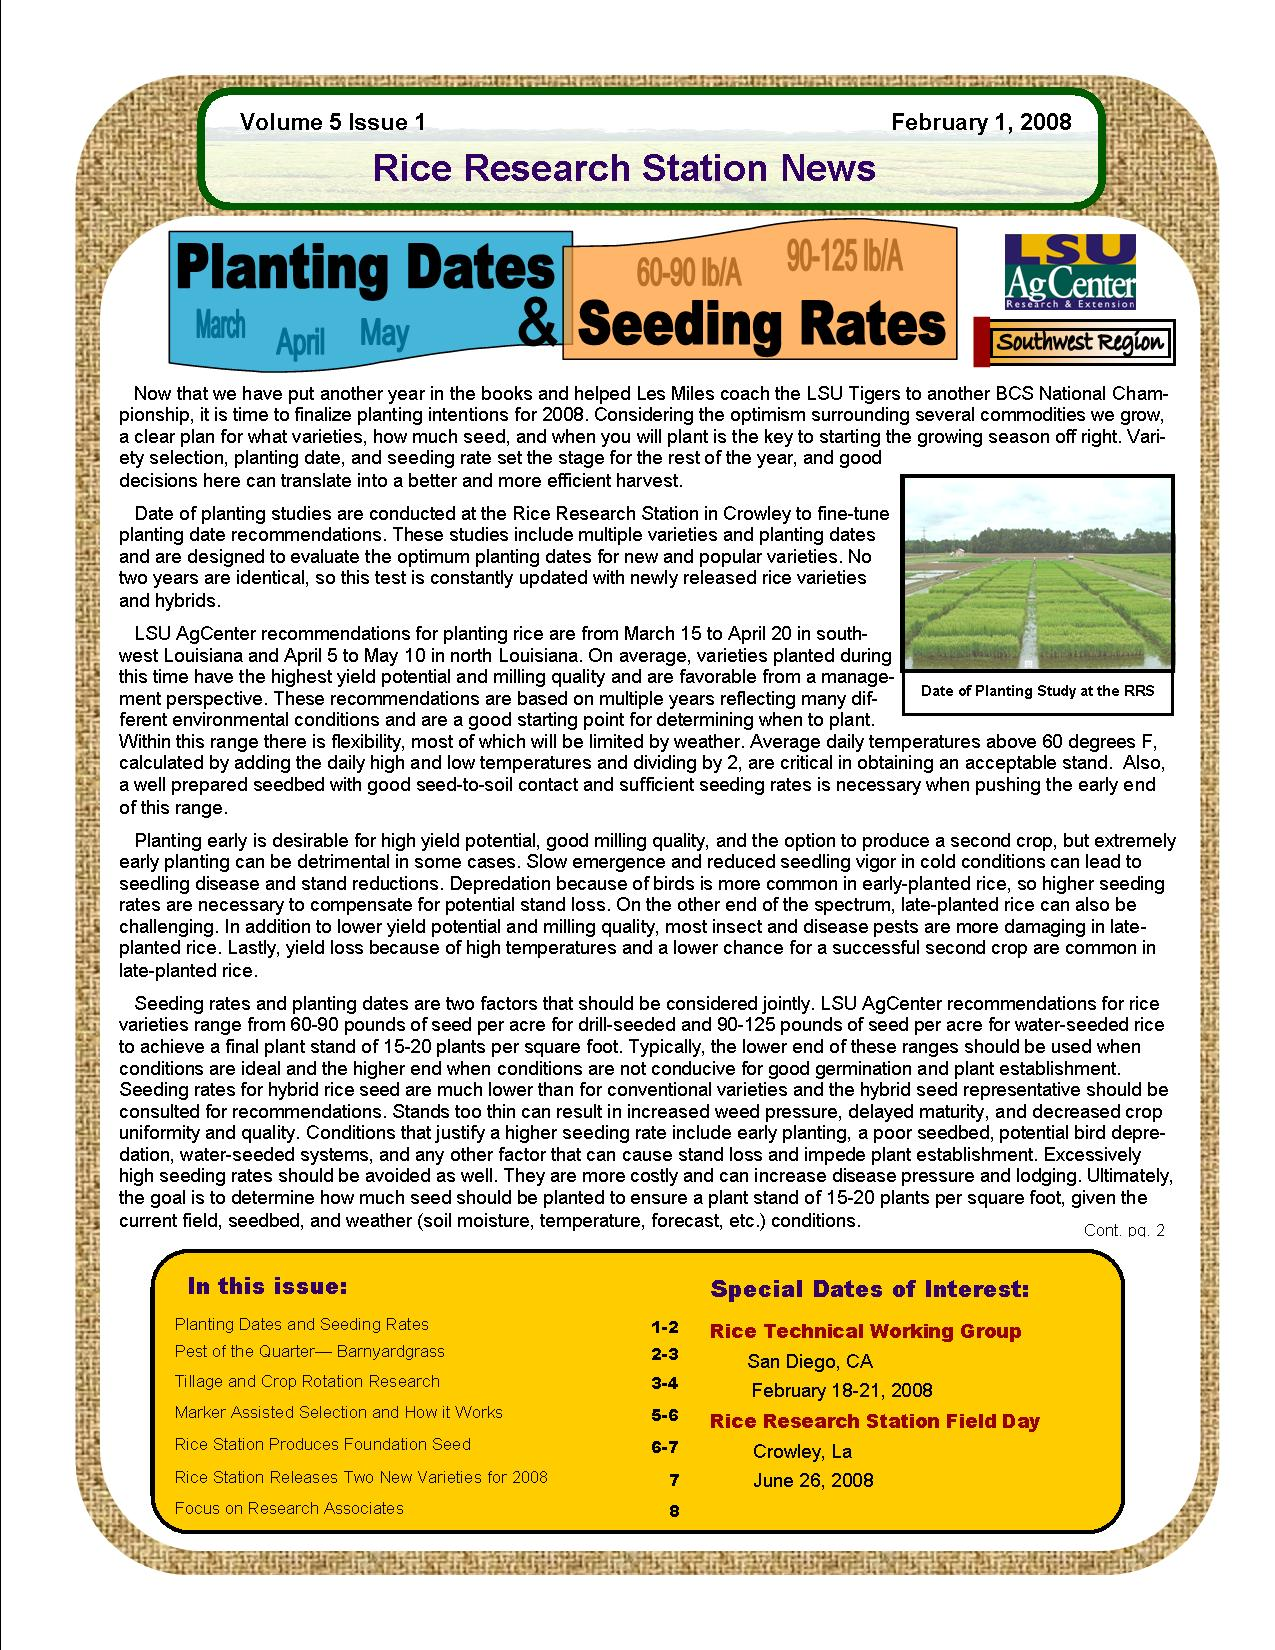 2008 Rice Station Newsletters